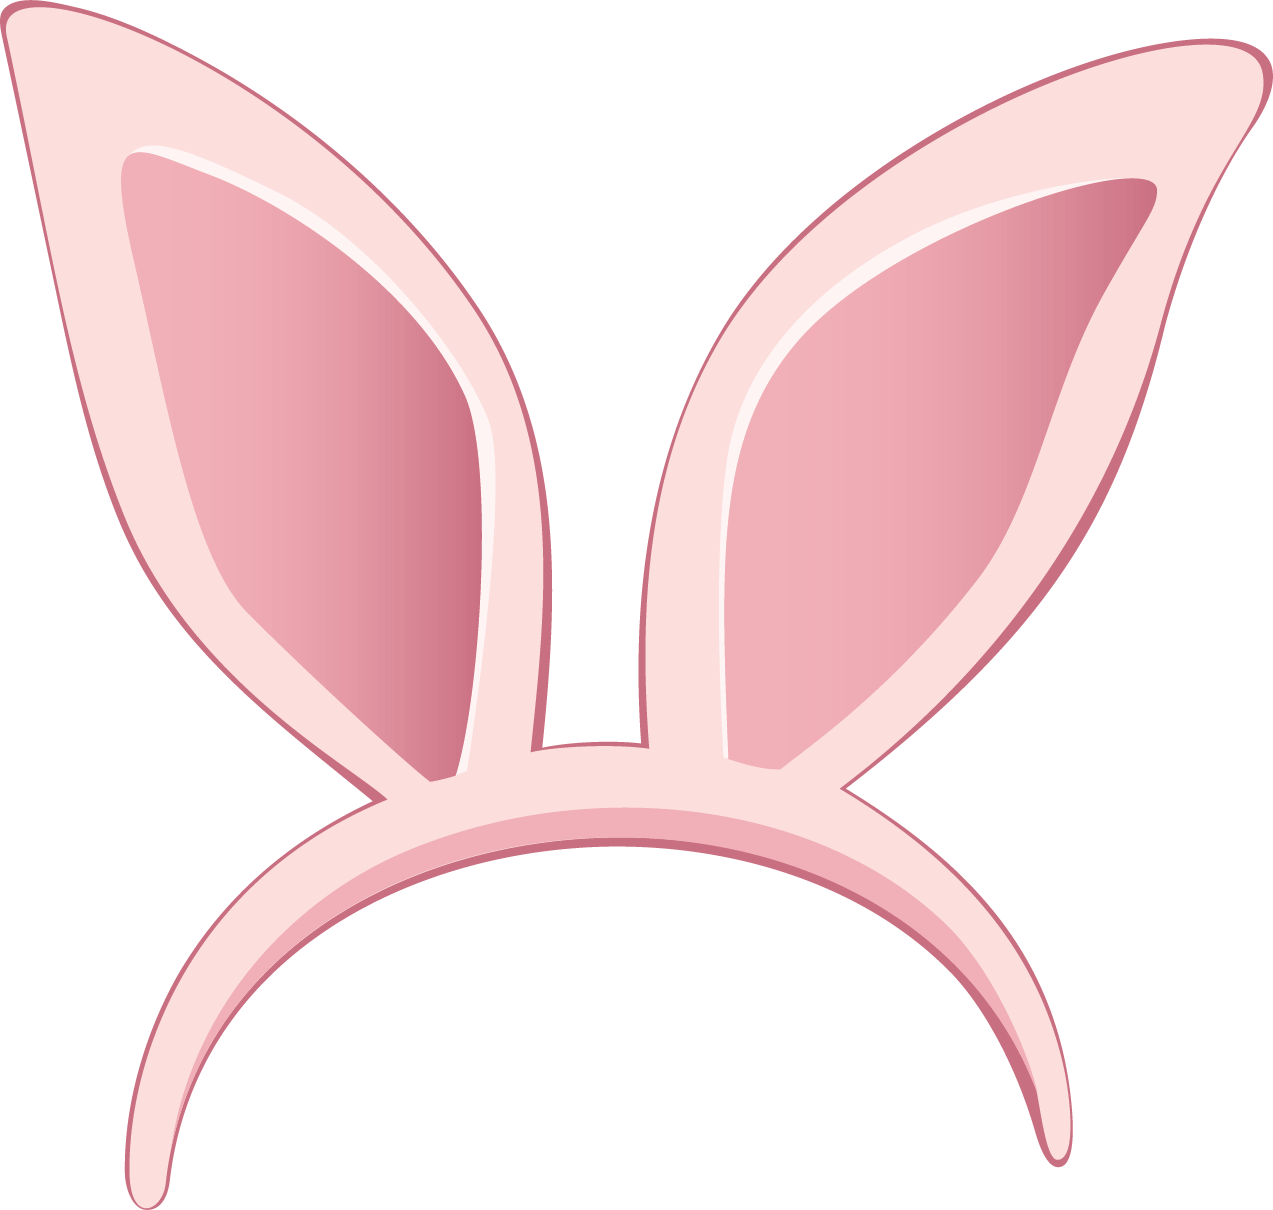 Ears clipart. Ear transparent png stickpng